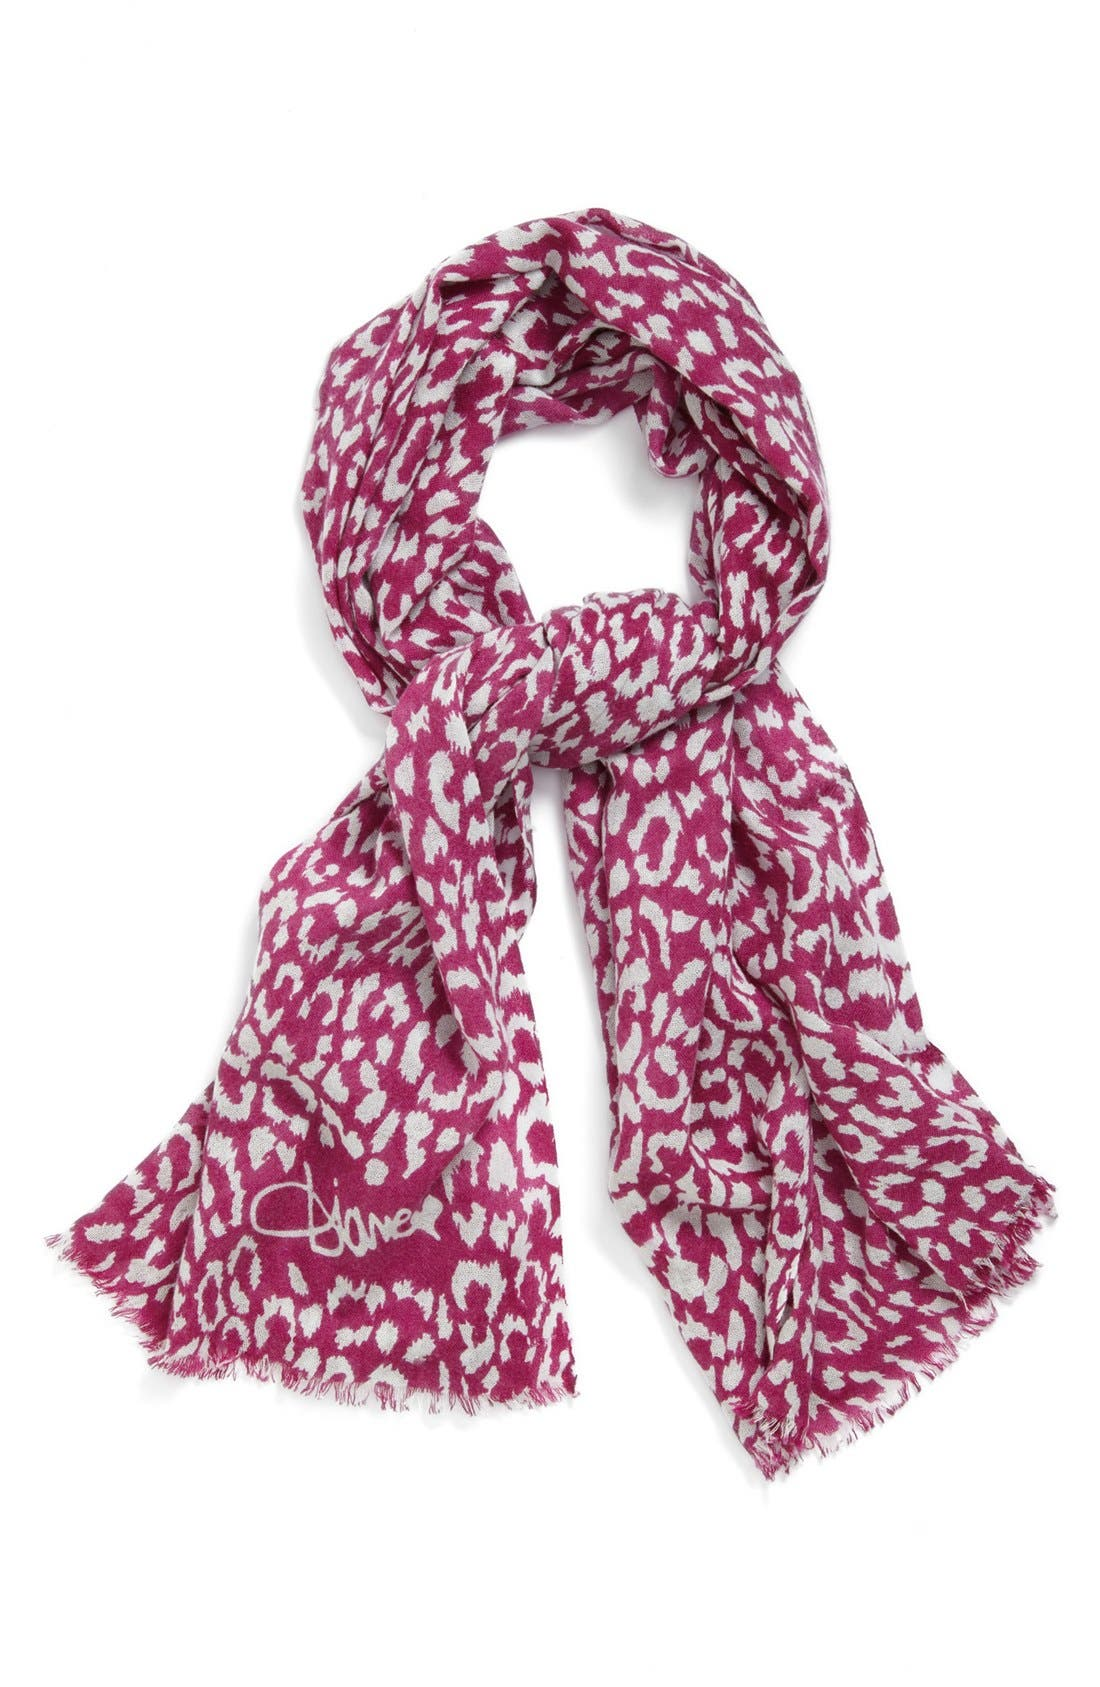 'Kenley' Cashmere Scarf,                             Main thumbnail 1, color,                             Spotted Cat Luxe Pink